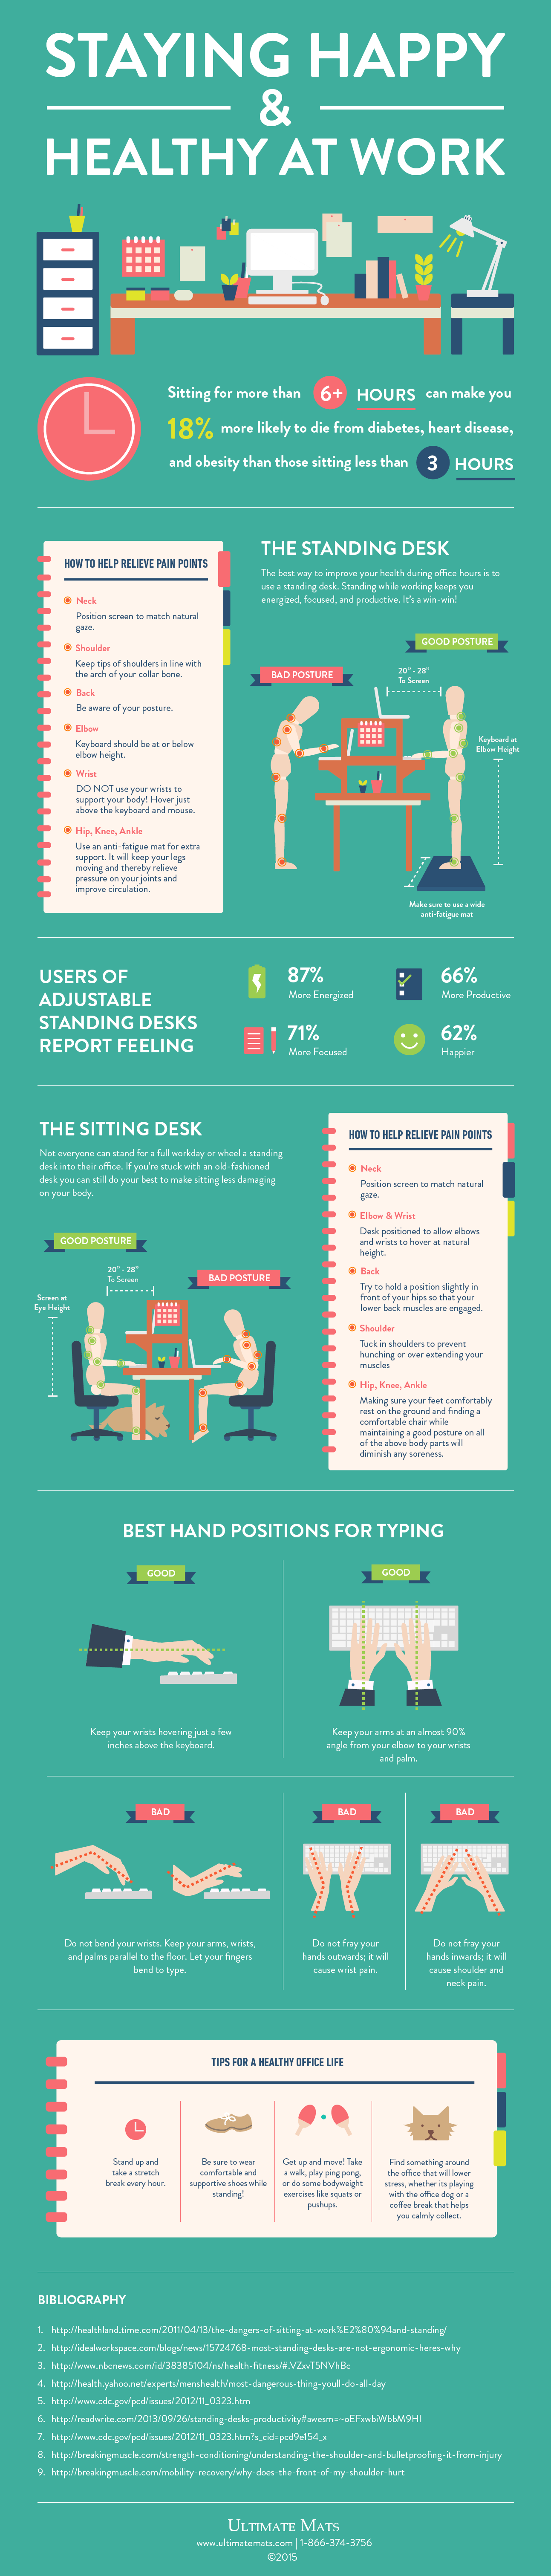 Standing & Desk Ergonomics: Hacking Your Workspace to Stay Comfortable